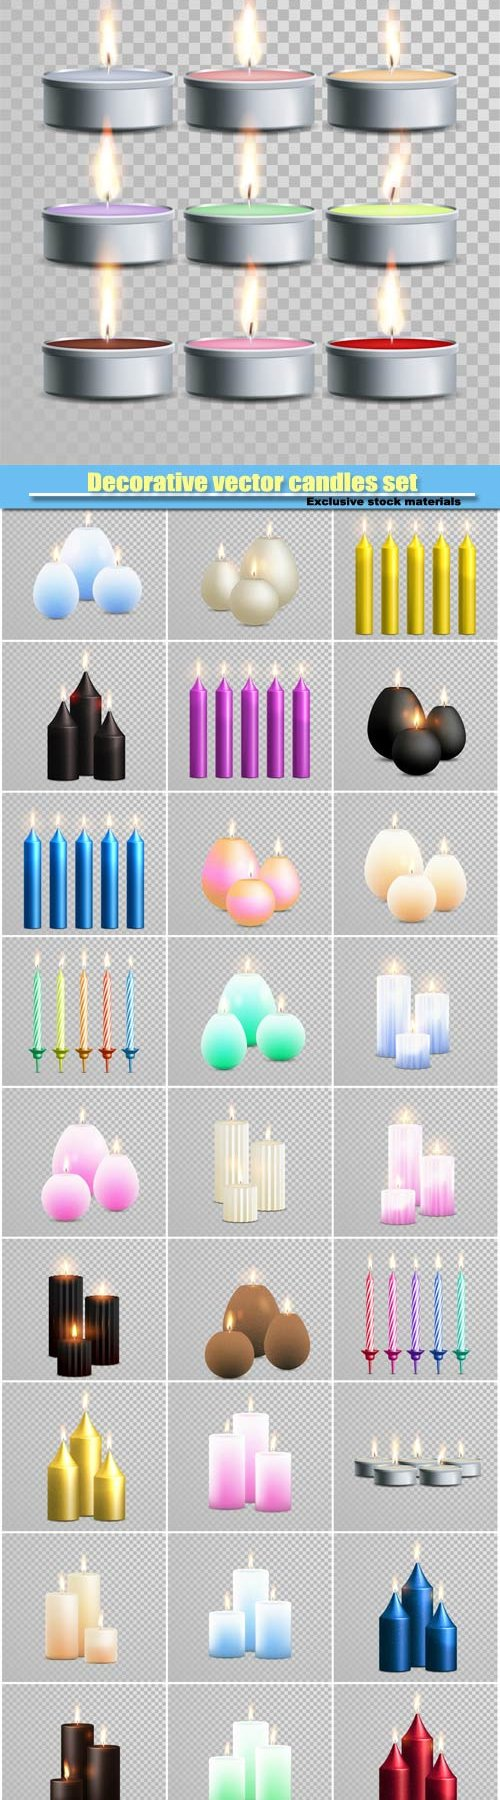 Decorative vector candles set